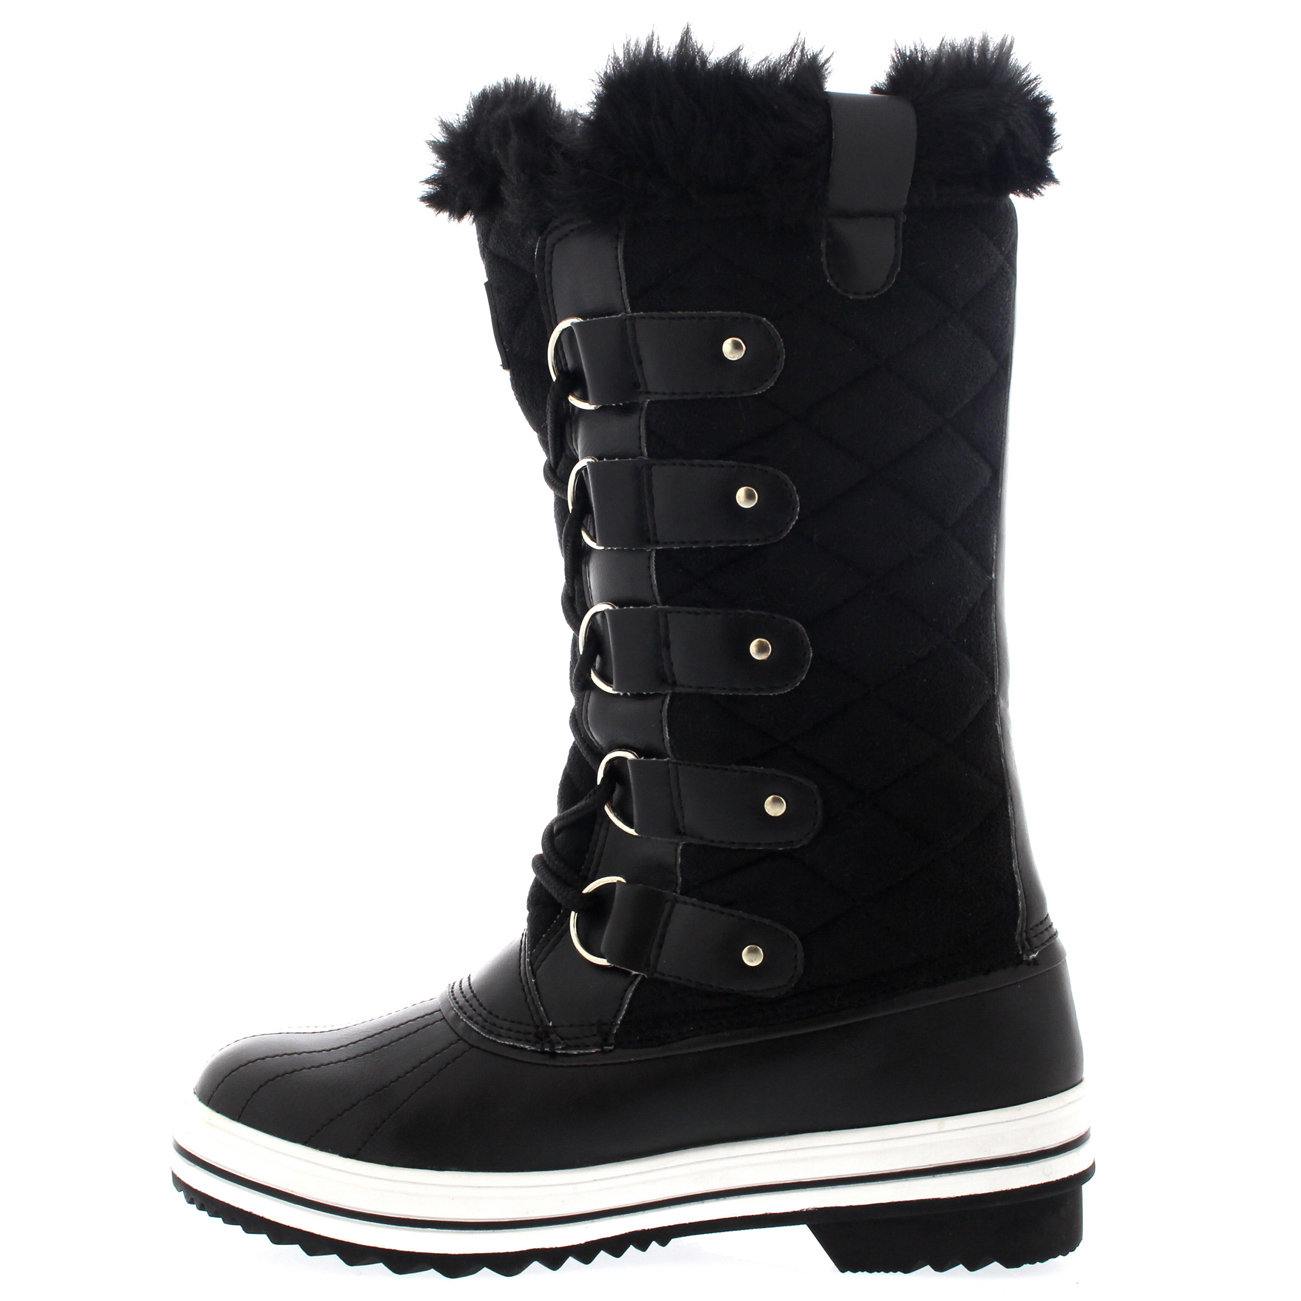 Womens Quilted Rain Lace Up Fur Lined Warm Shoes Duck Winter Snow ... 7fc253d14